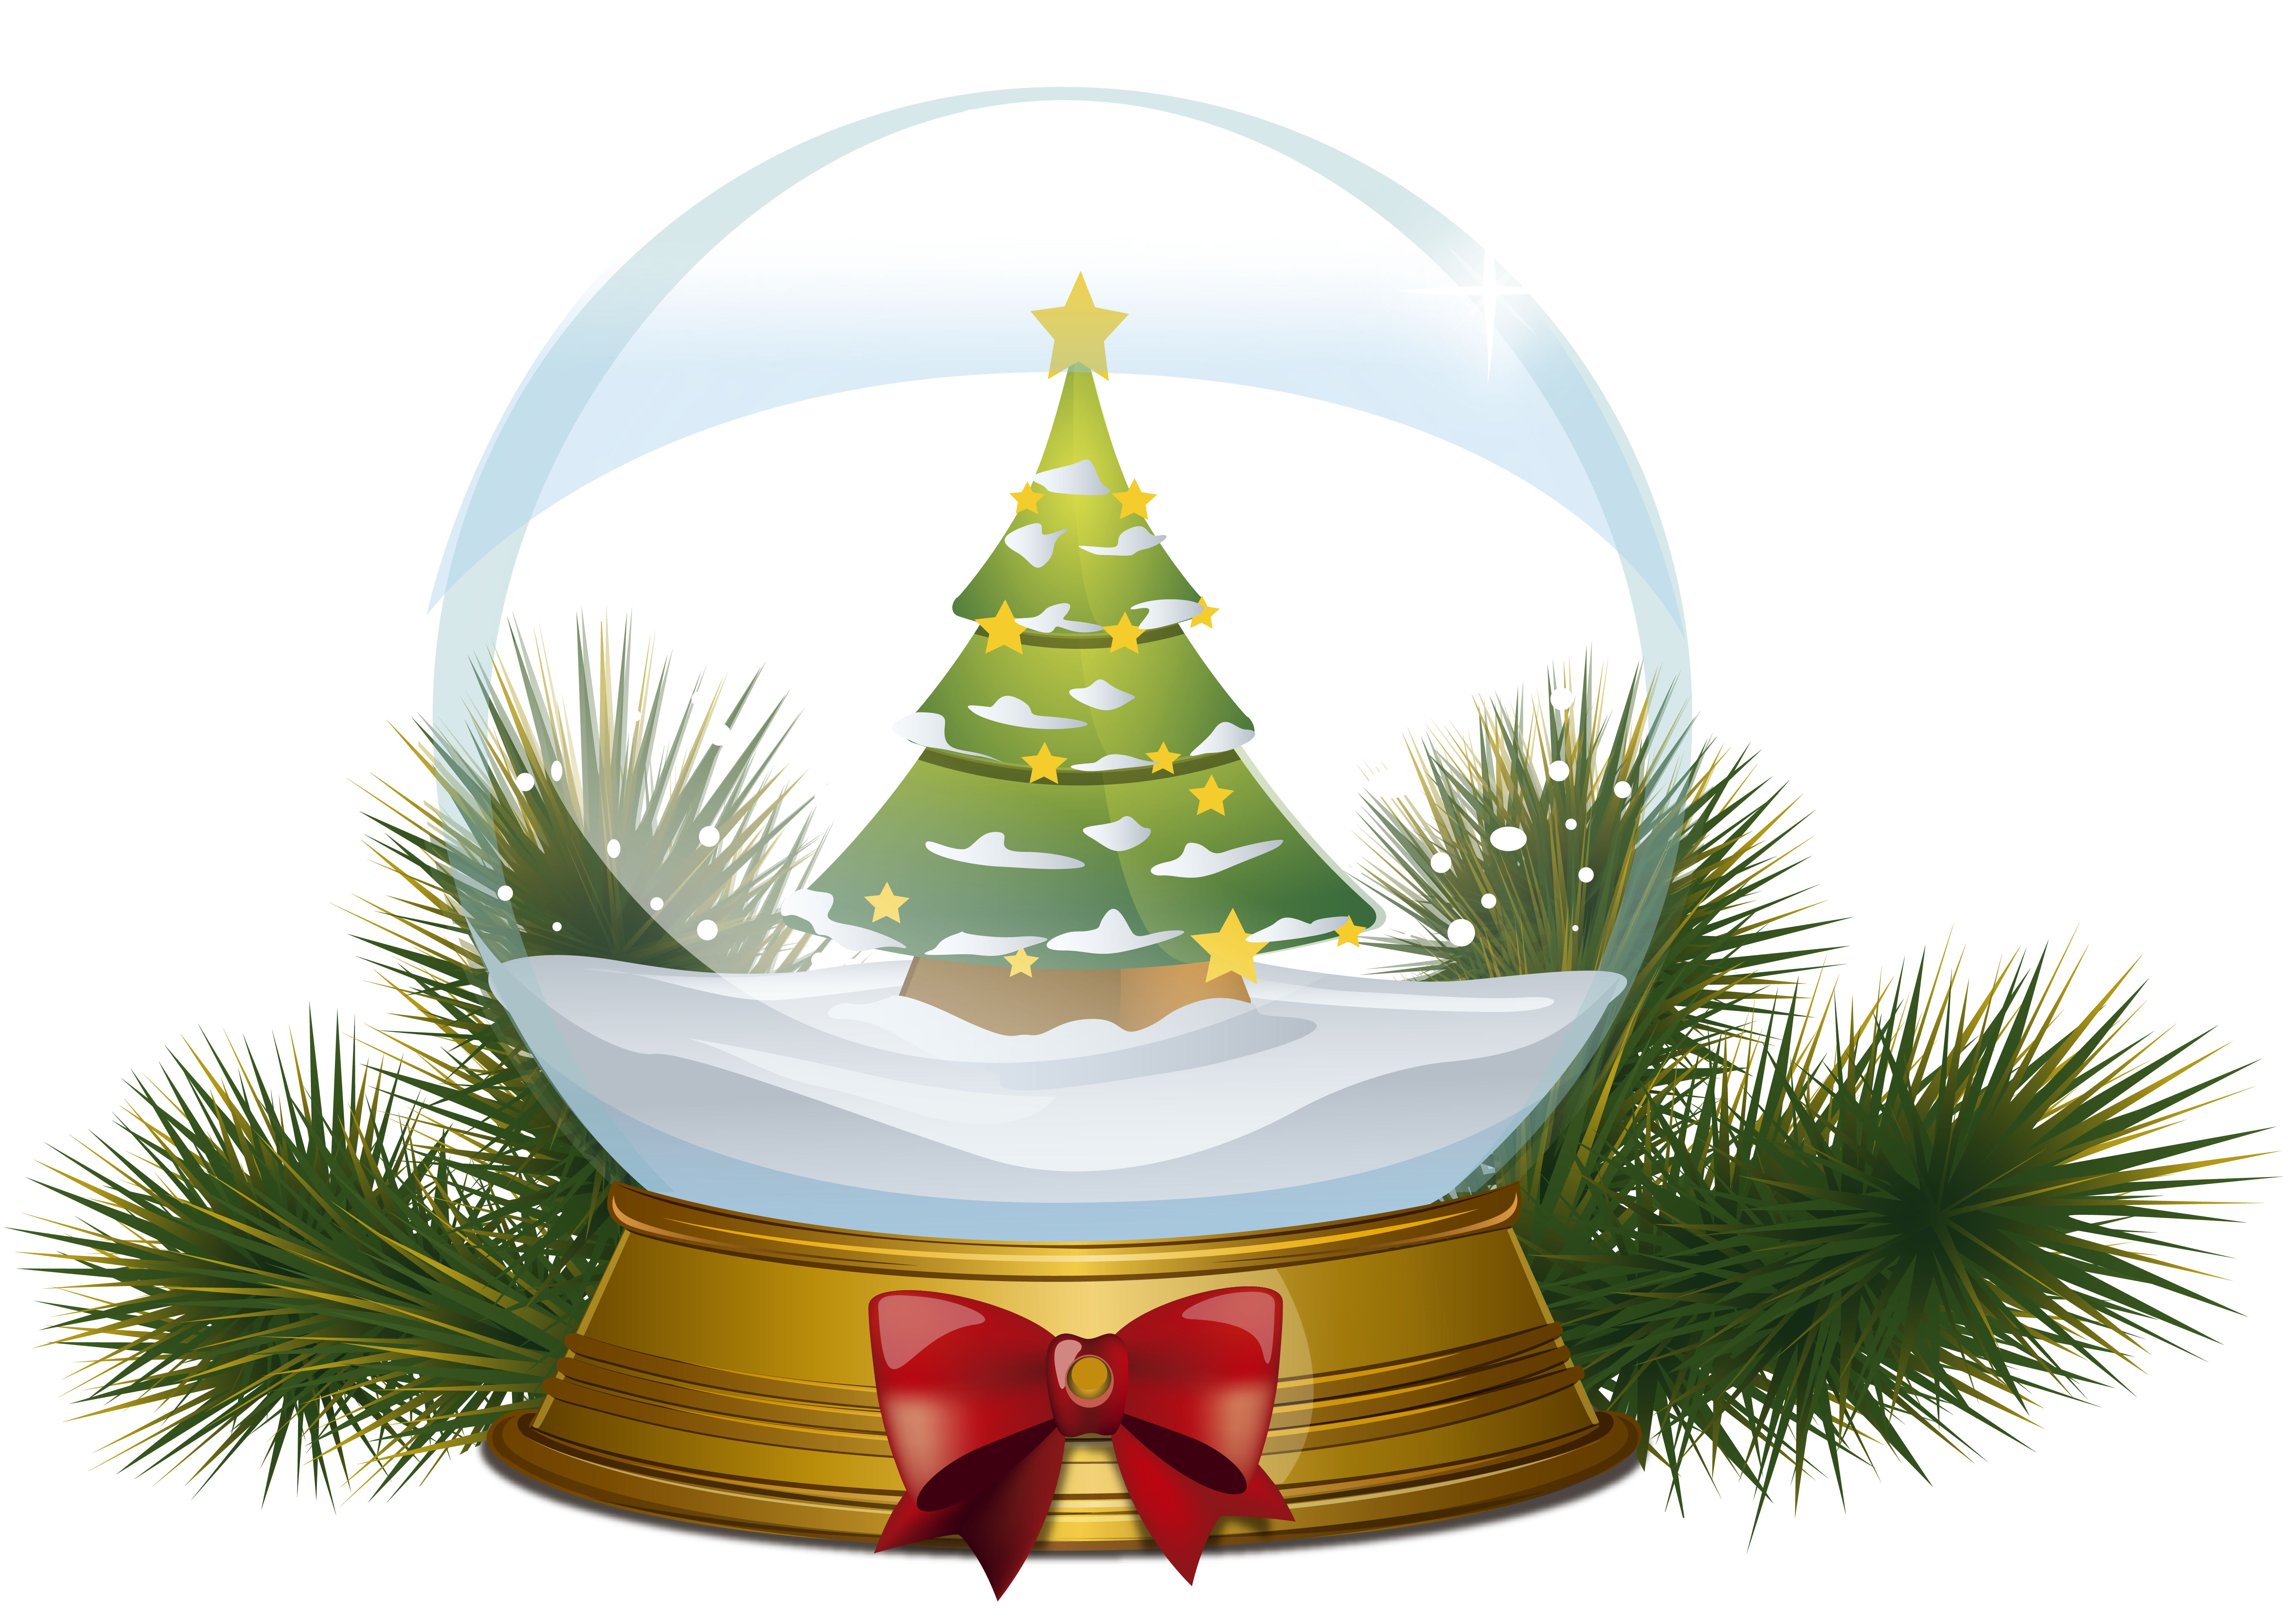 Snow tree clipart clipart royalty free stock Christmas Tree Snowglobe PNG Clipart Image | Gallery Yopriceville ... clipart royalty free stock